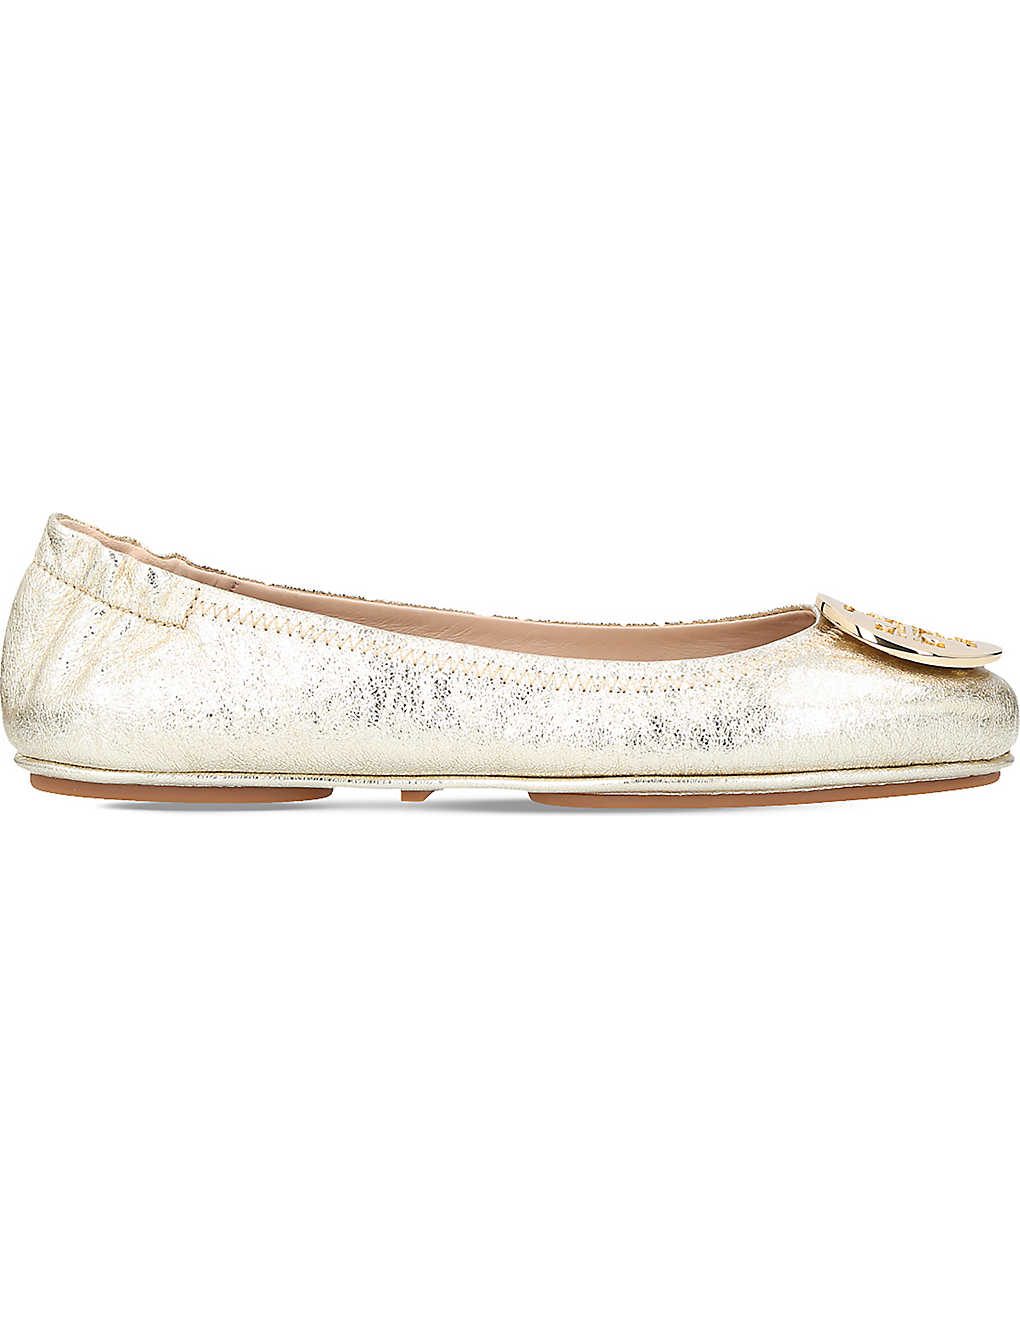 c878458eae2f11 TORY BURCH - Minnie Travel metallic leather ballet flats ...